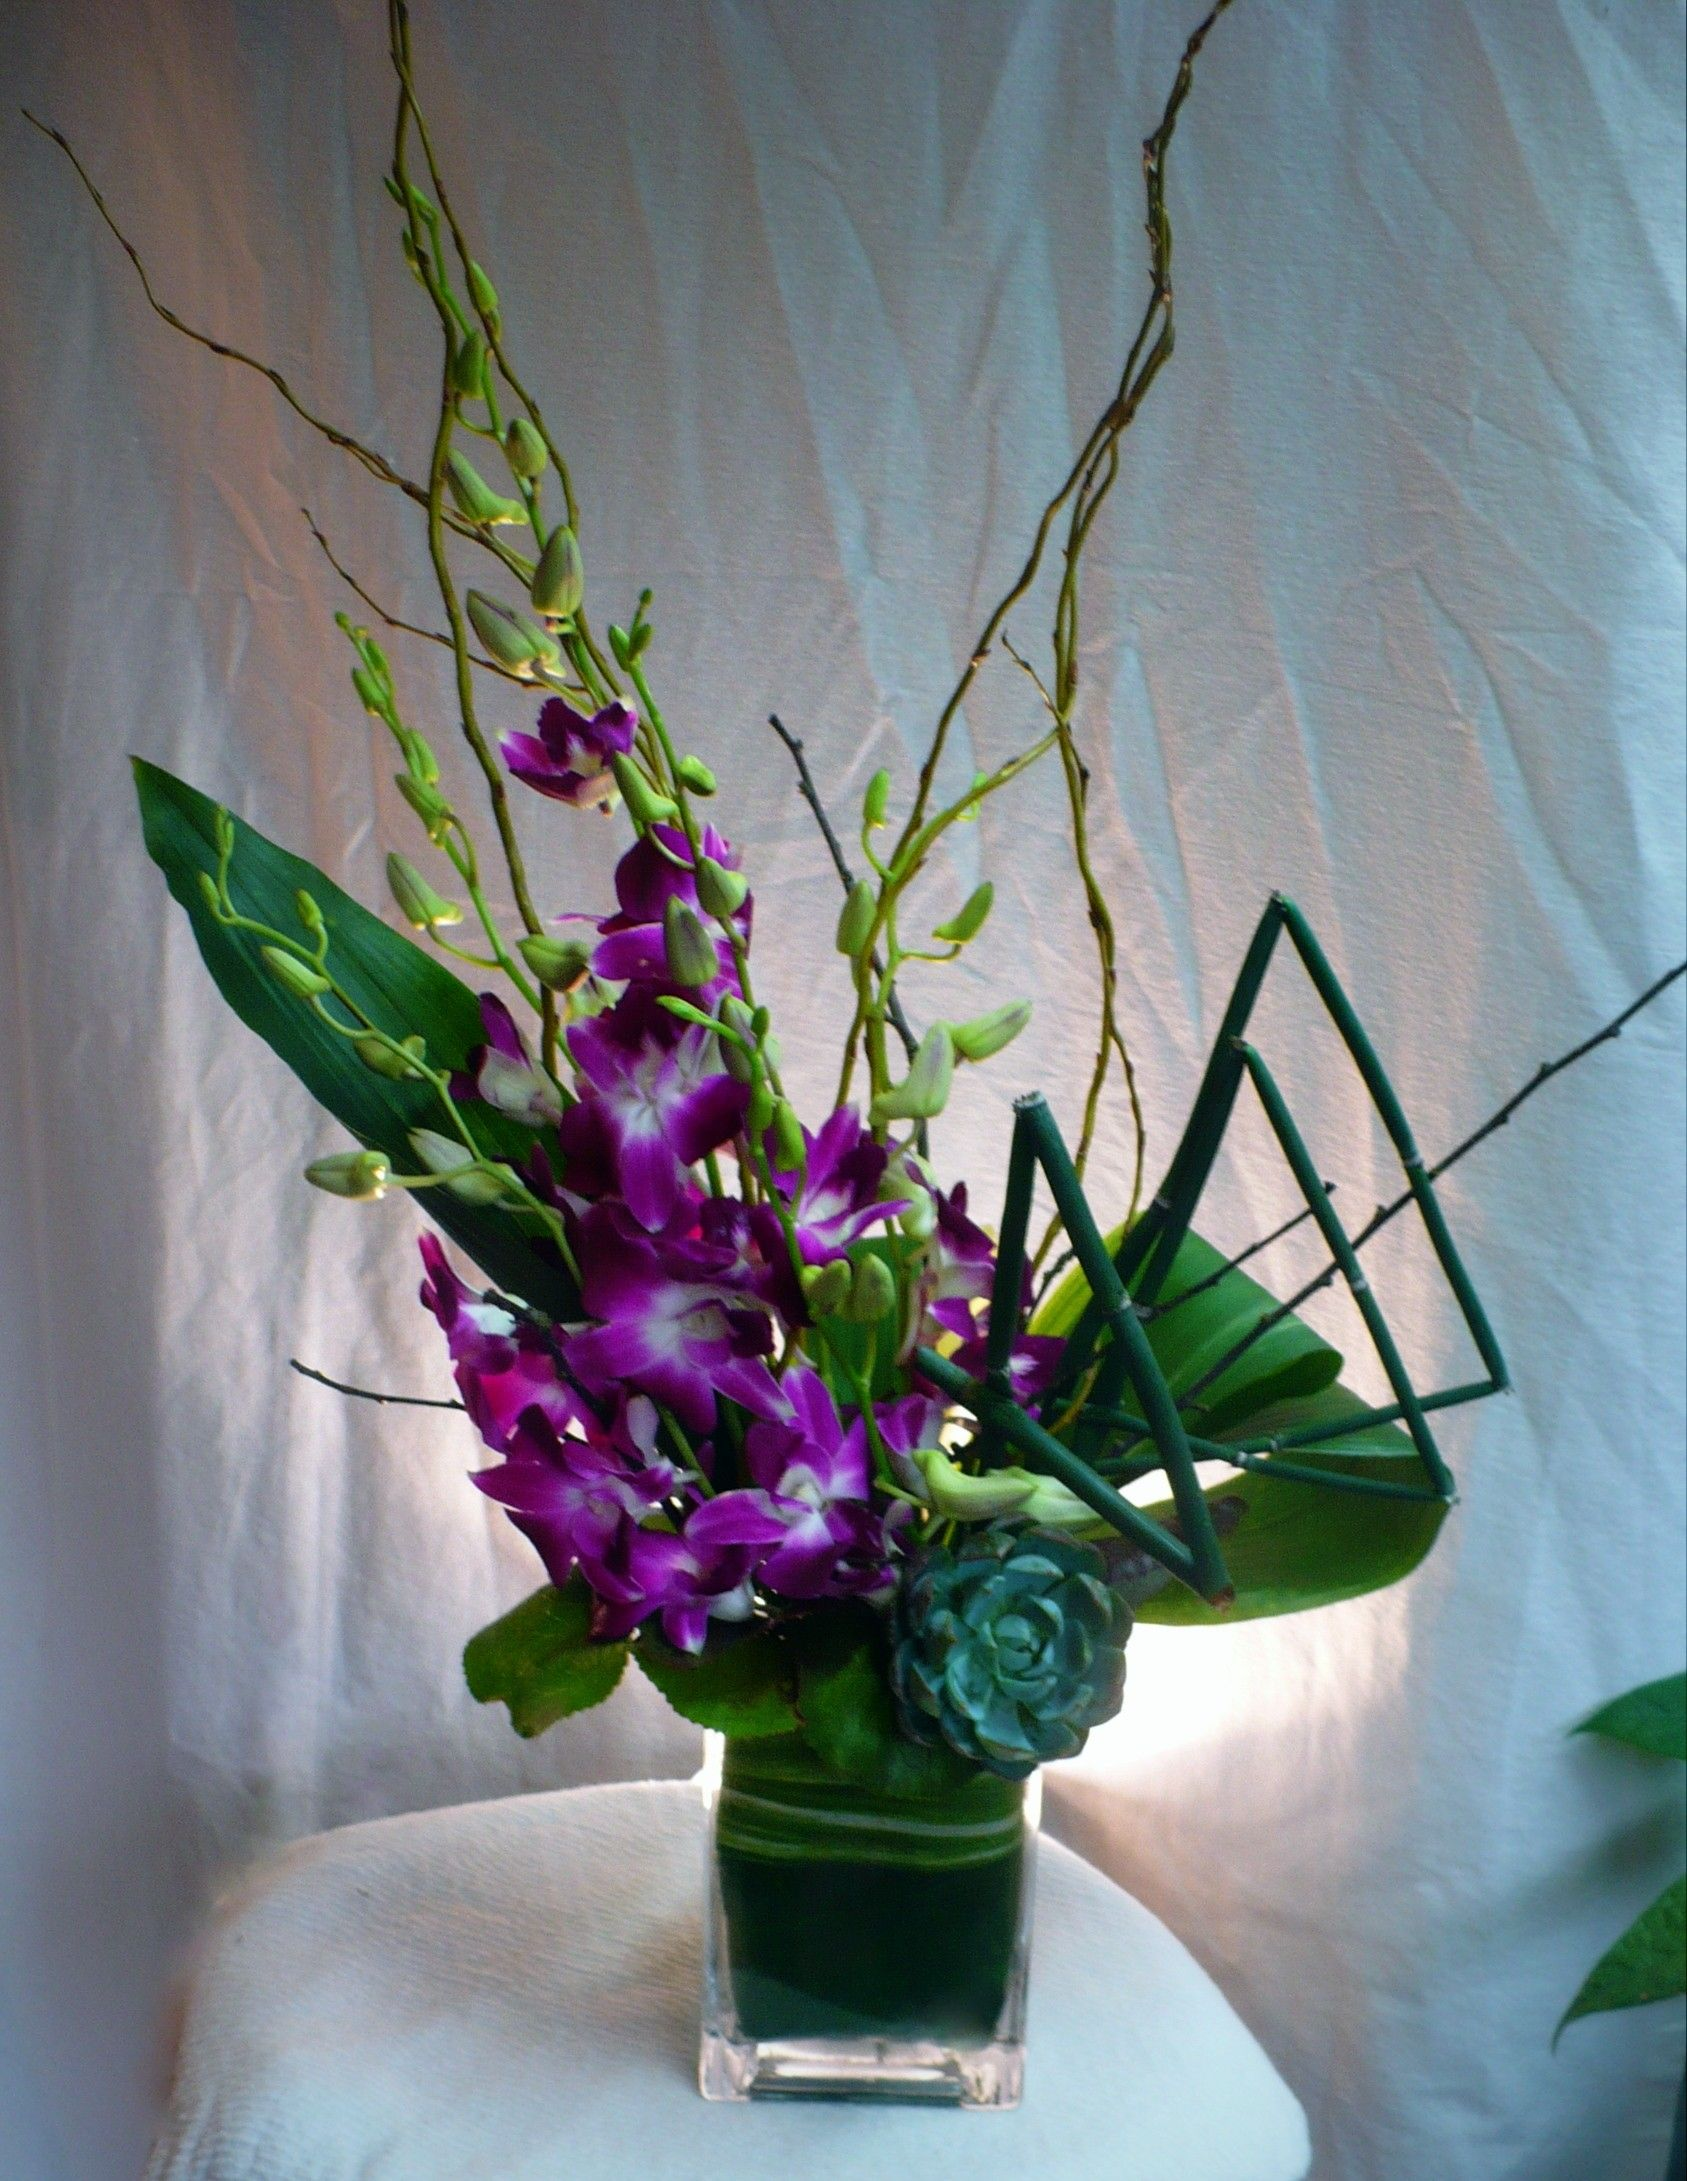 Send Royal Orchid Jewels flowers in Portland, OR Fresh